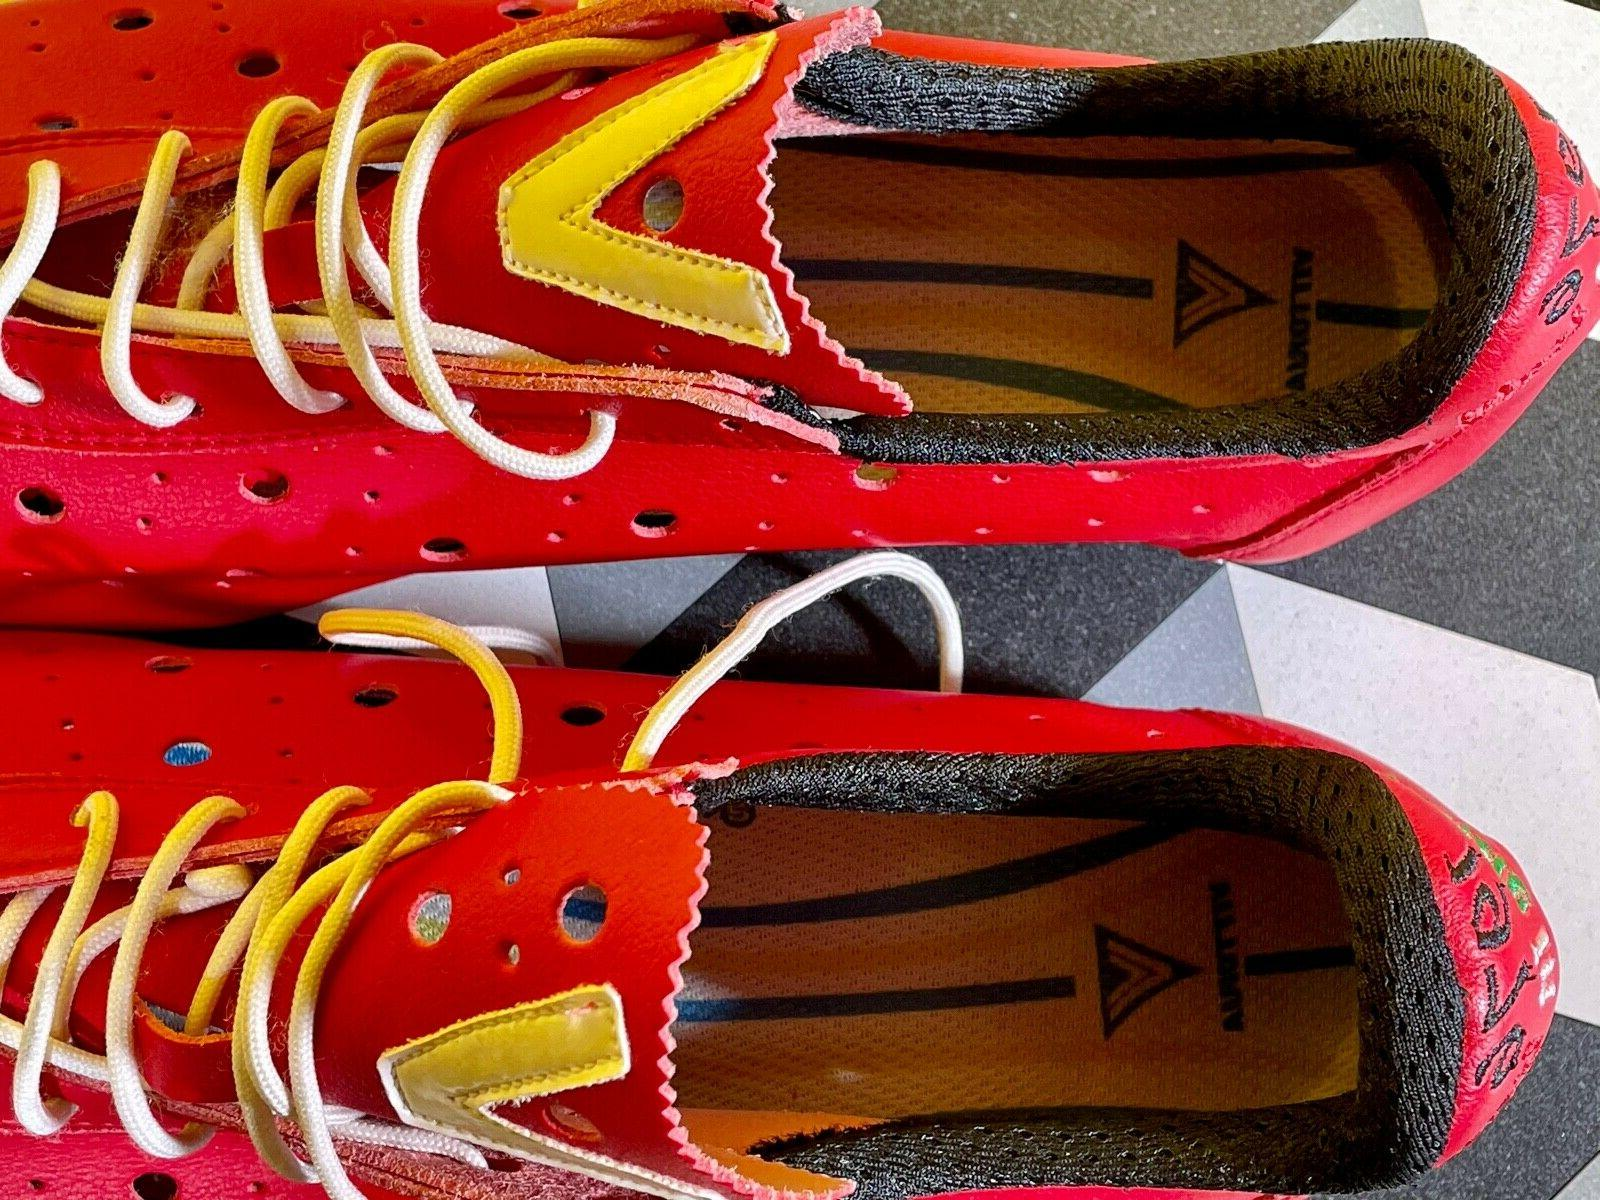 Vittoria 1976 Cycling Shoes Red - Never